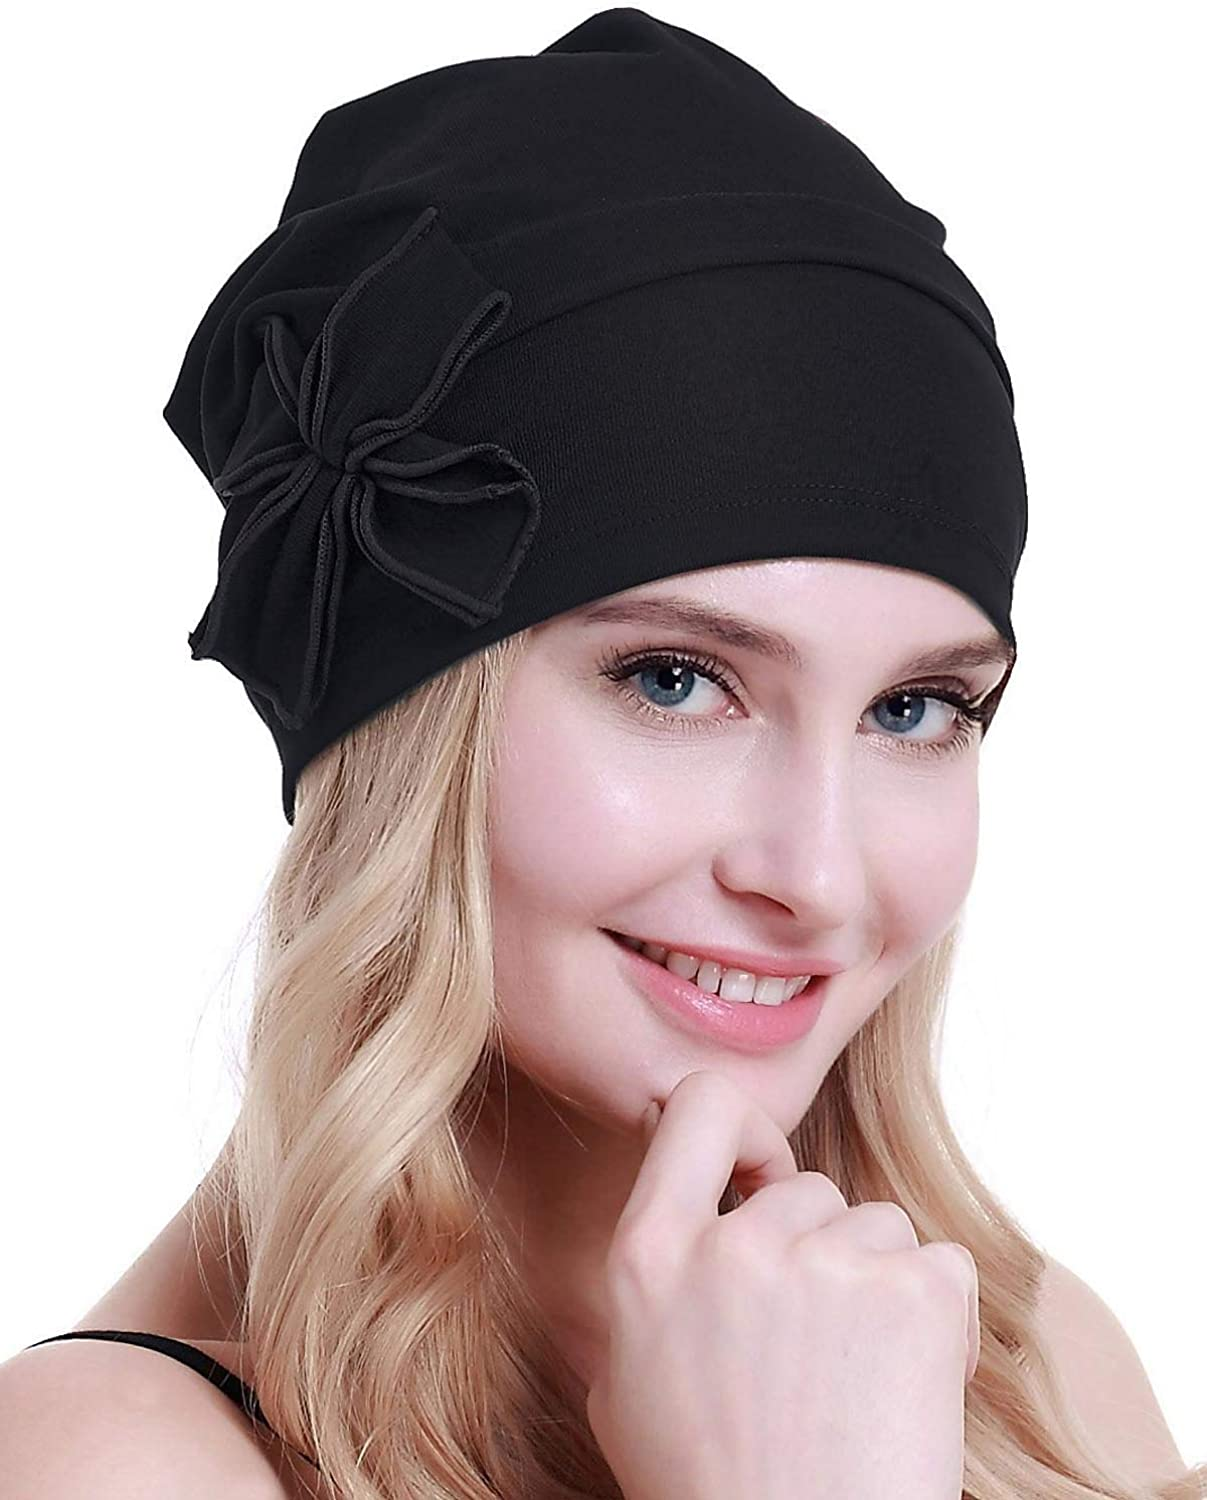 osvyo Cotton Chemo Turbans Headwear Beanie Hat Cap for Women Cancer Patient Hairloss